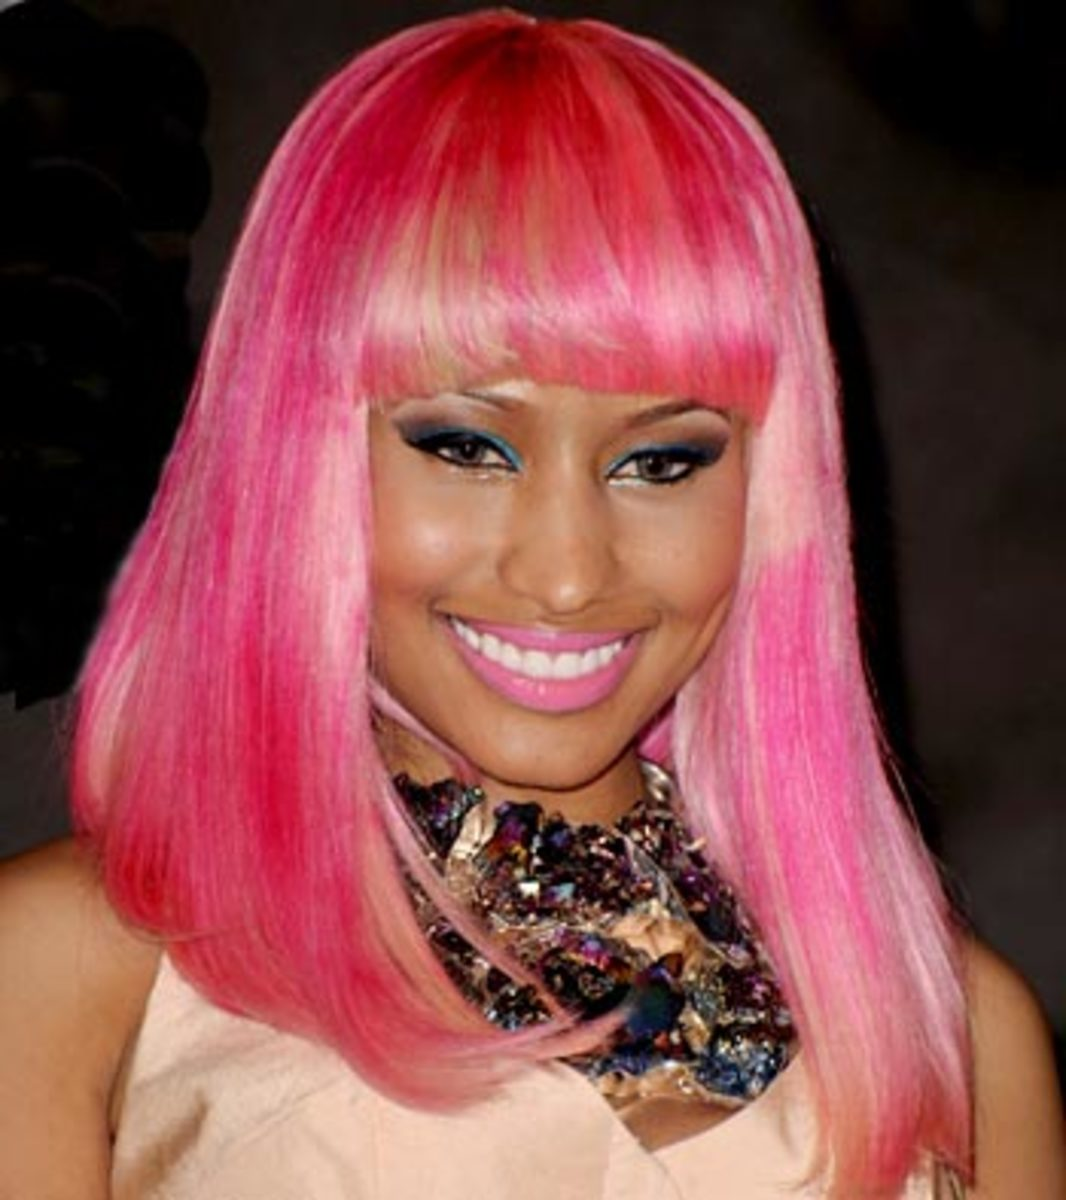 Nicki Minaj in a Pink and Blonde Wig